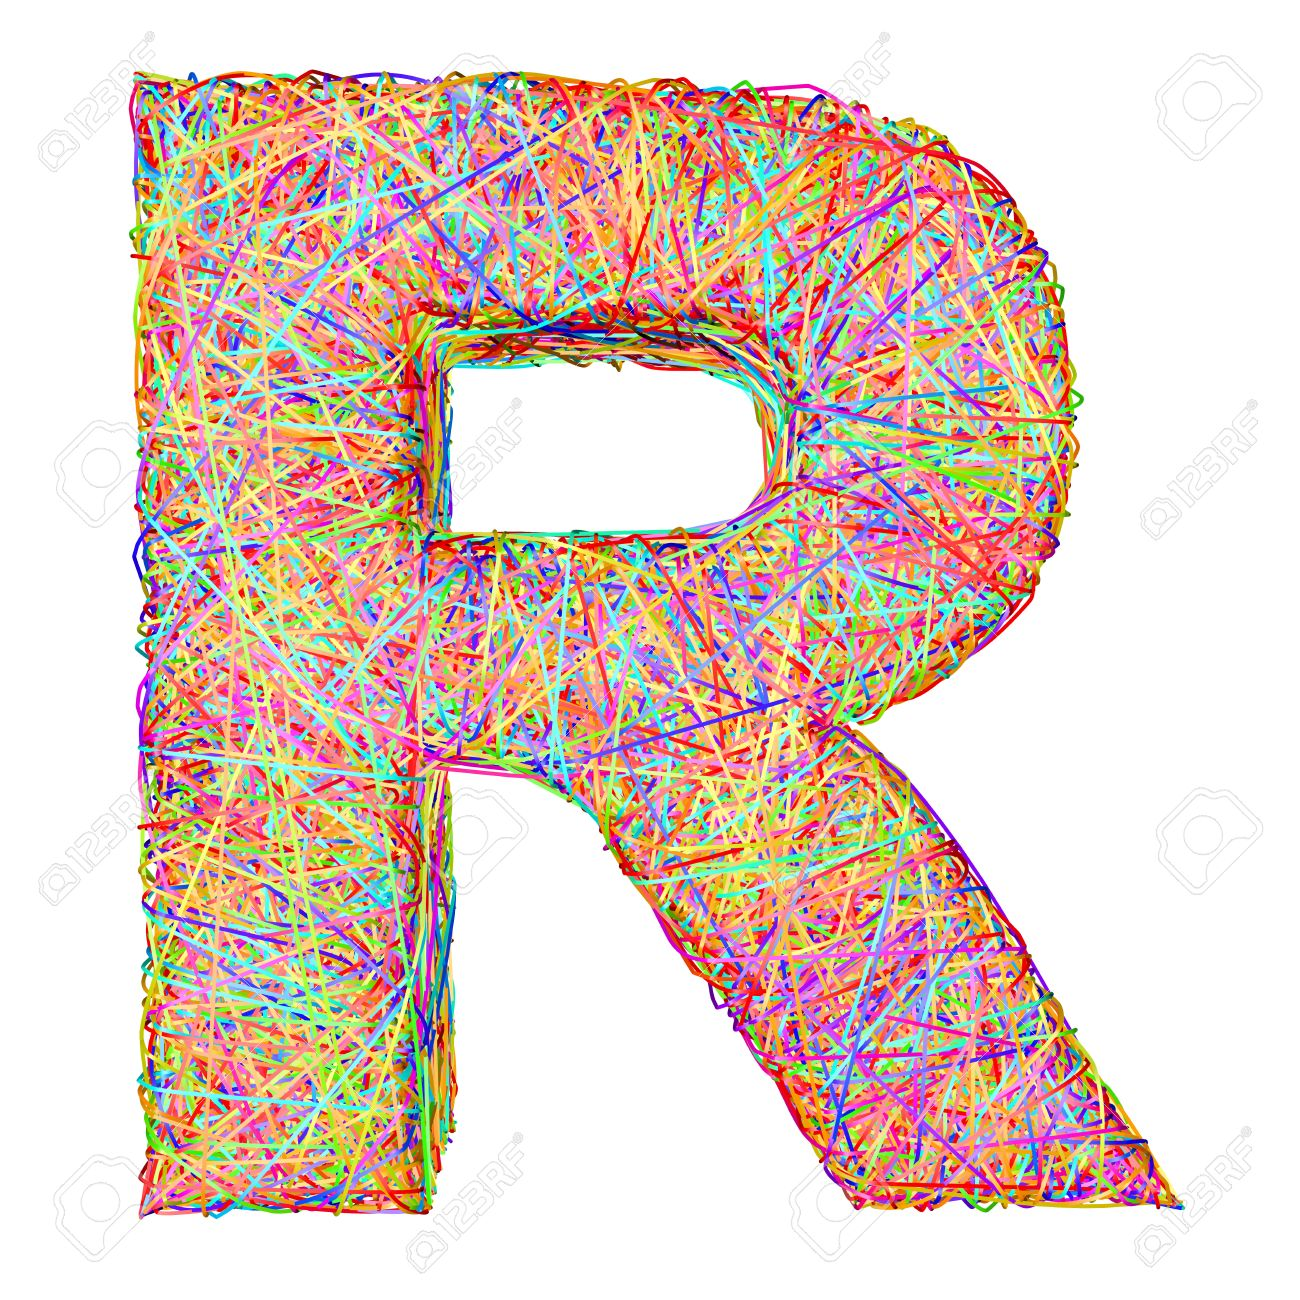 alphabet symbol letter r composed of colorful striplines isolated